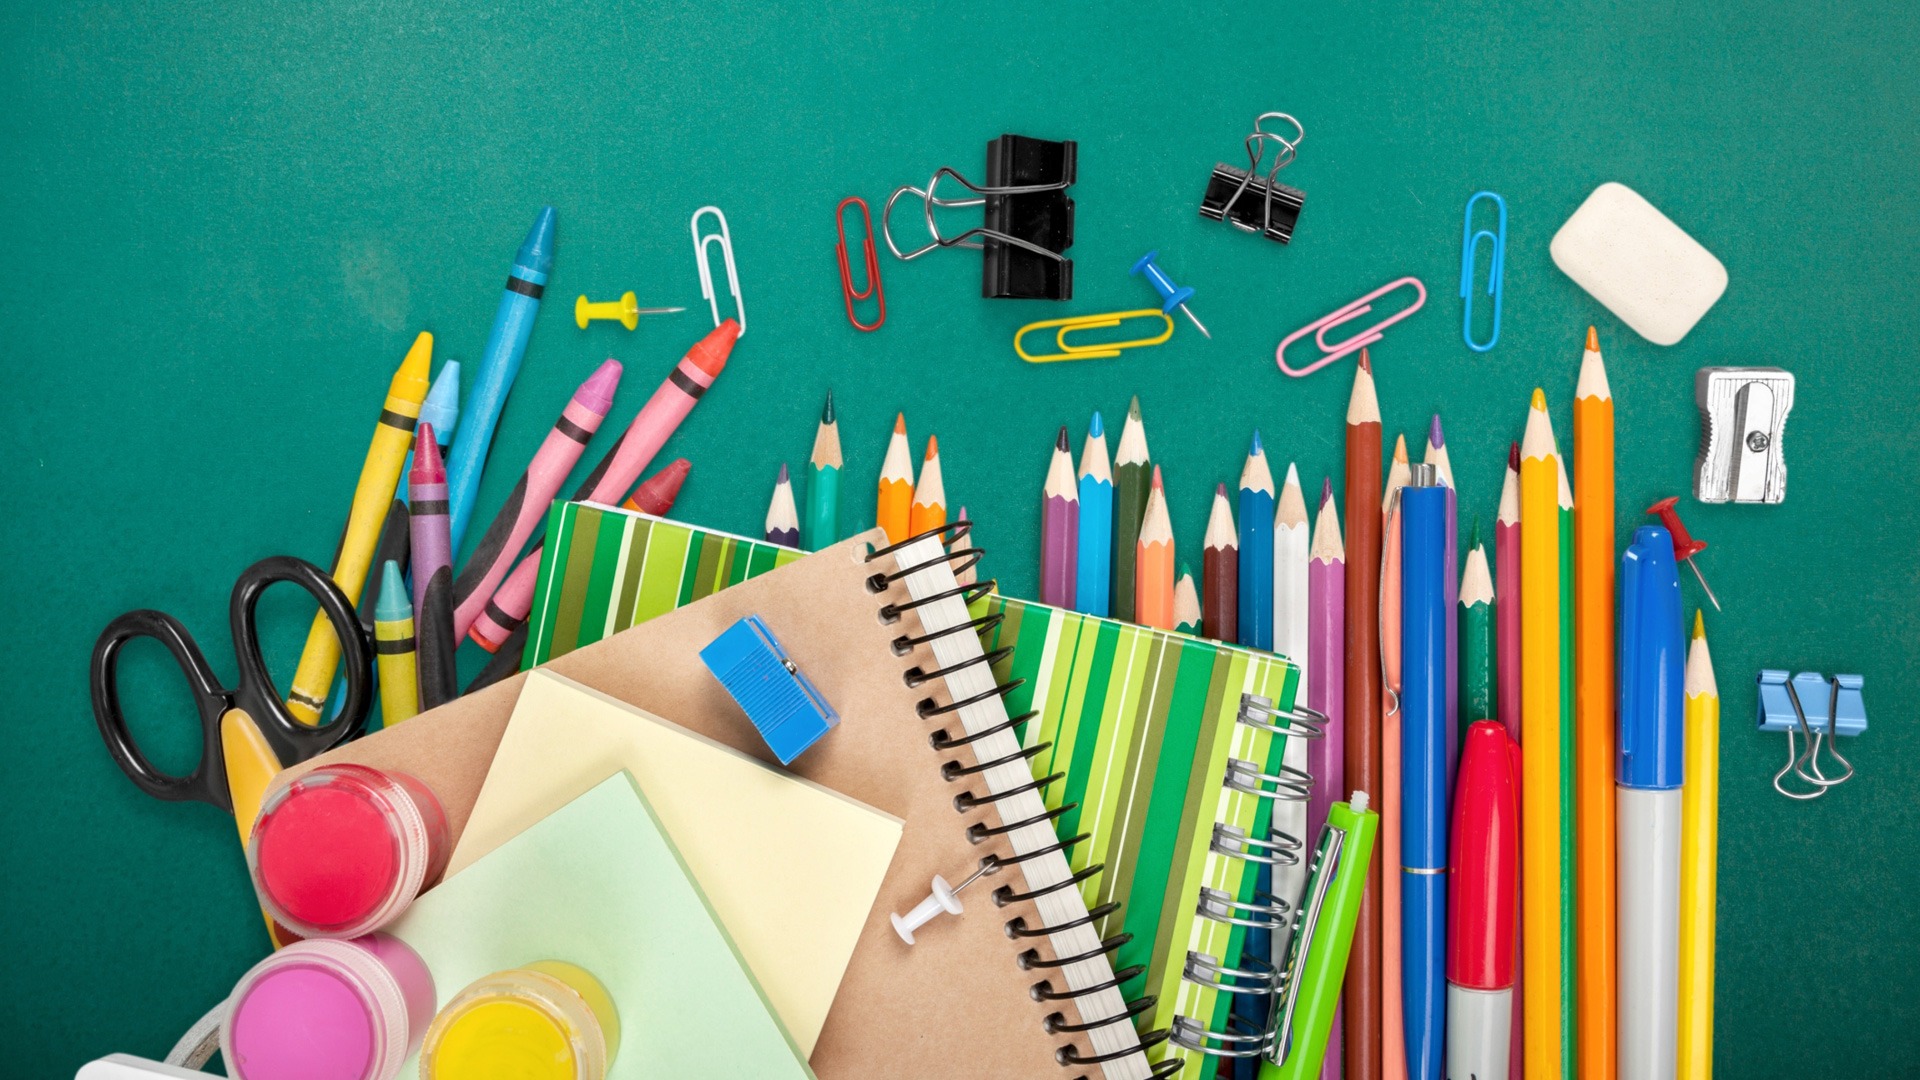 4-tips-for-a-smooth-back-to-school-transition-after-winter-break.jpg